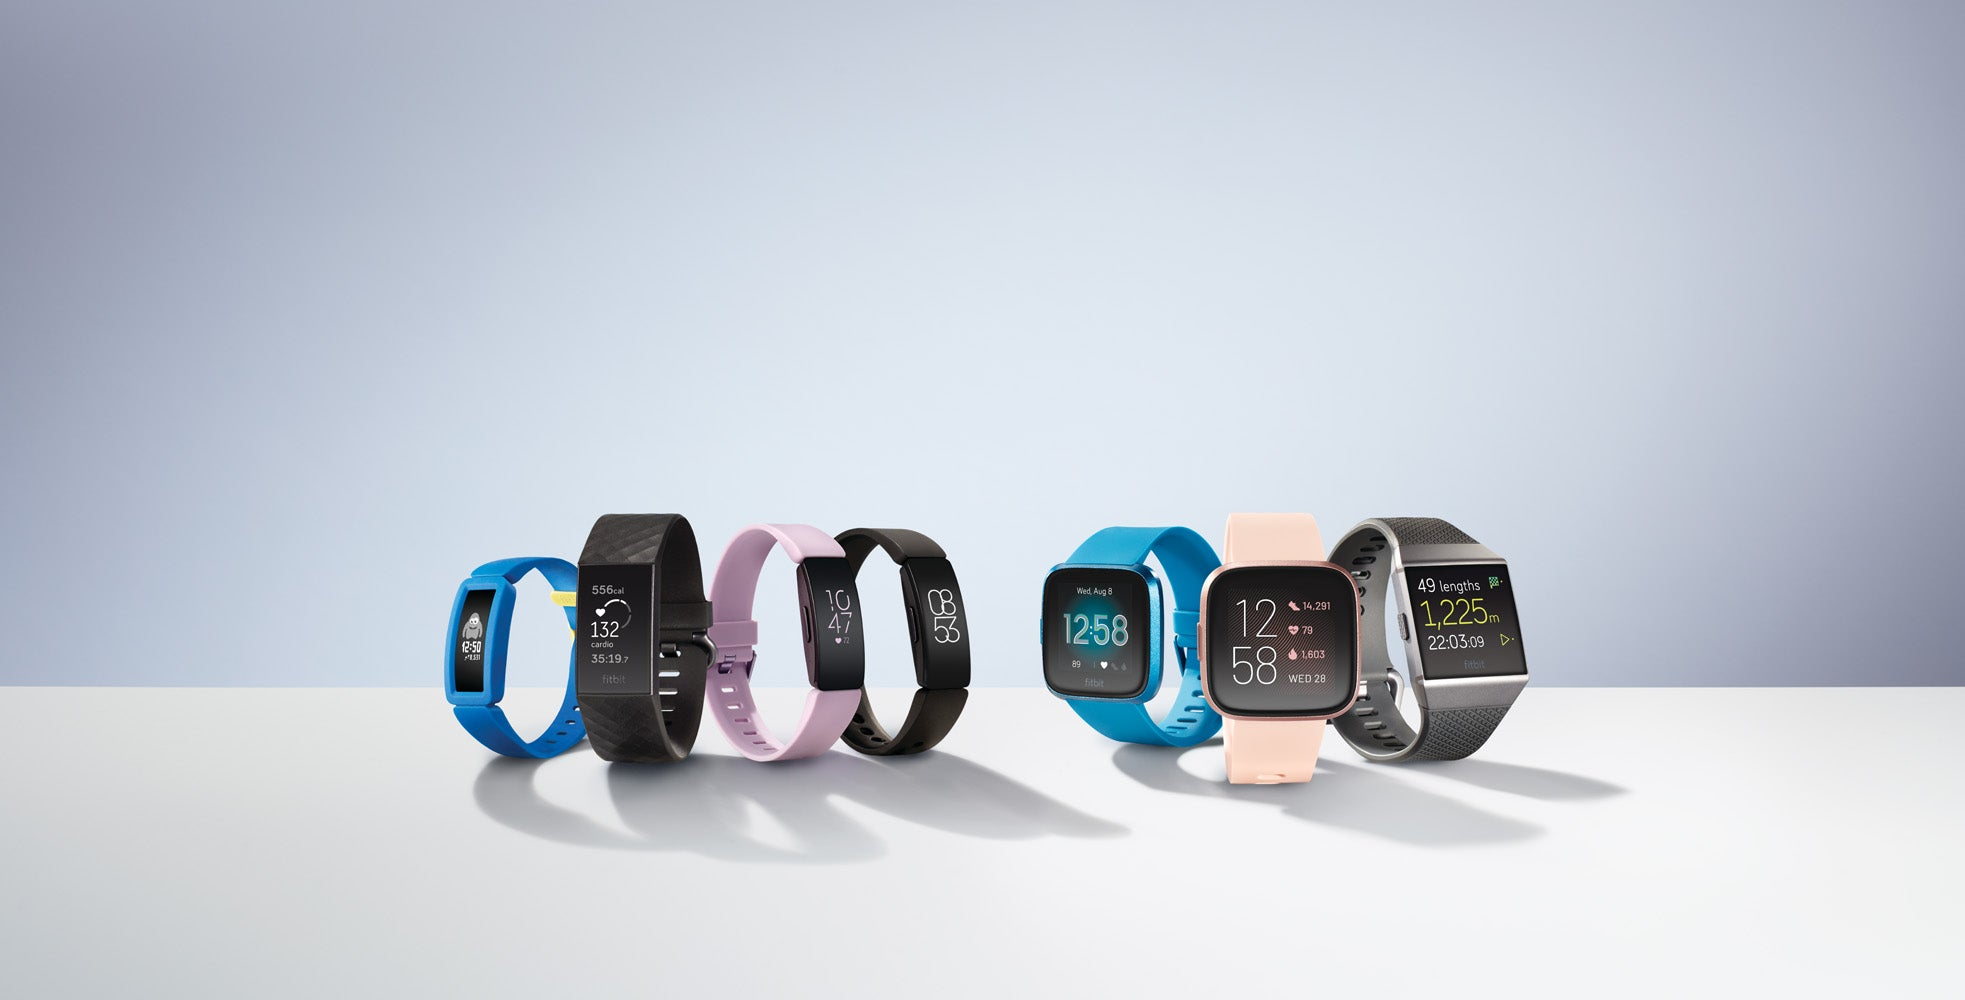 European Data Regulators Are Worried About Google Buying Fitbit | The Motley Fool